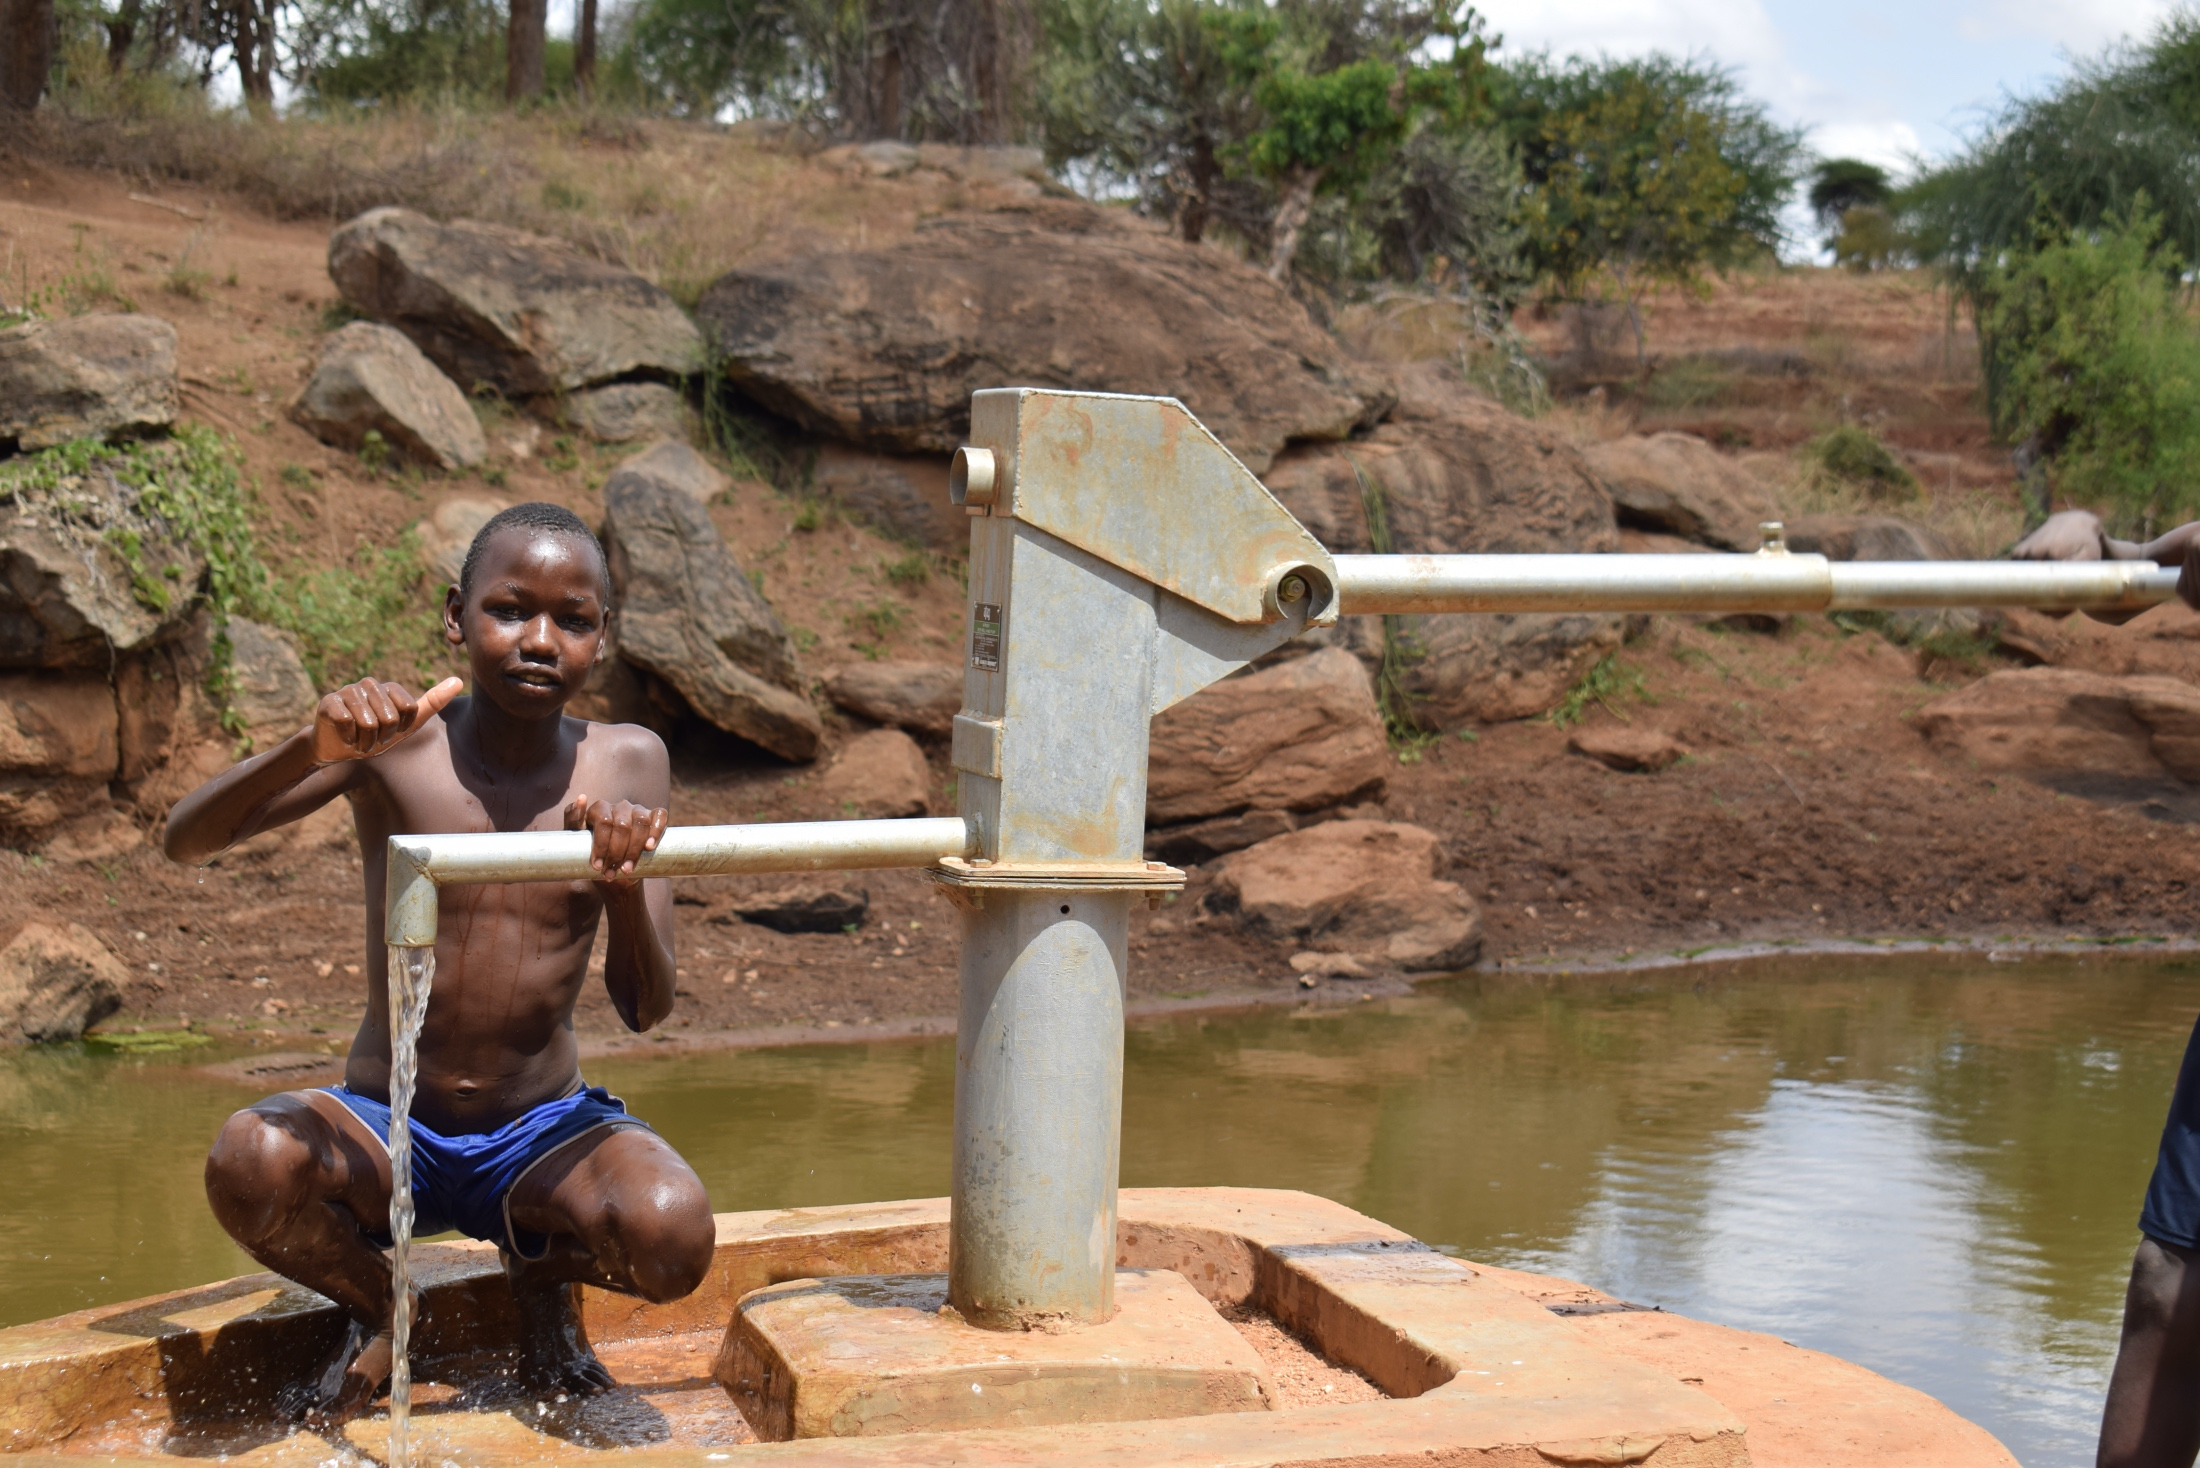 The Water Project : kenyua18195-thumbs-up-for-the-well